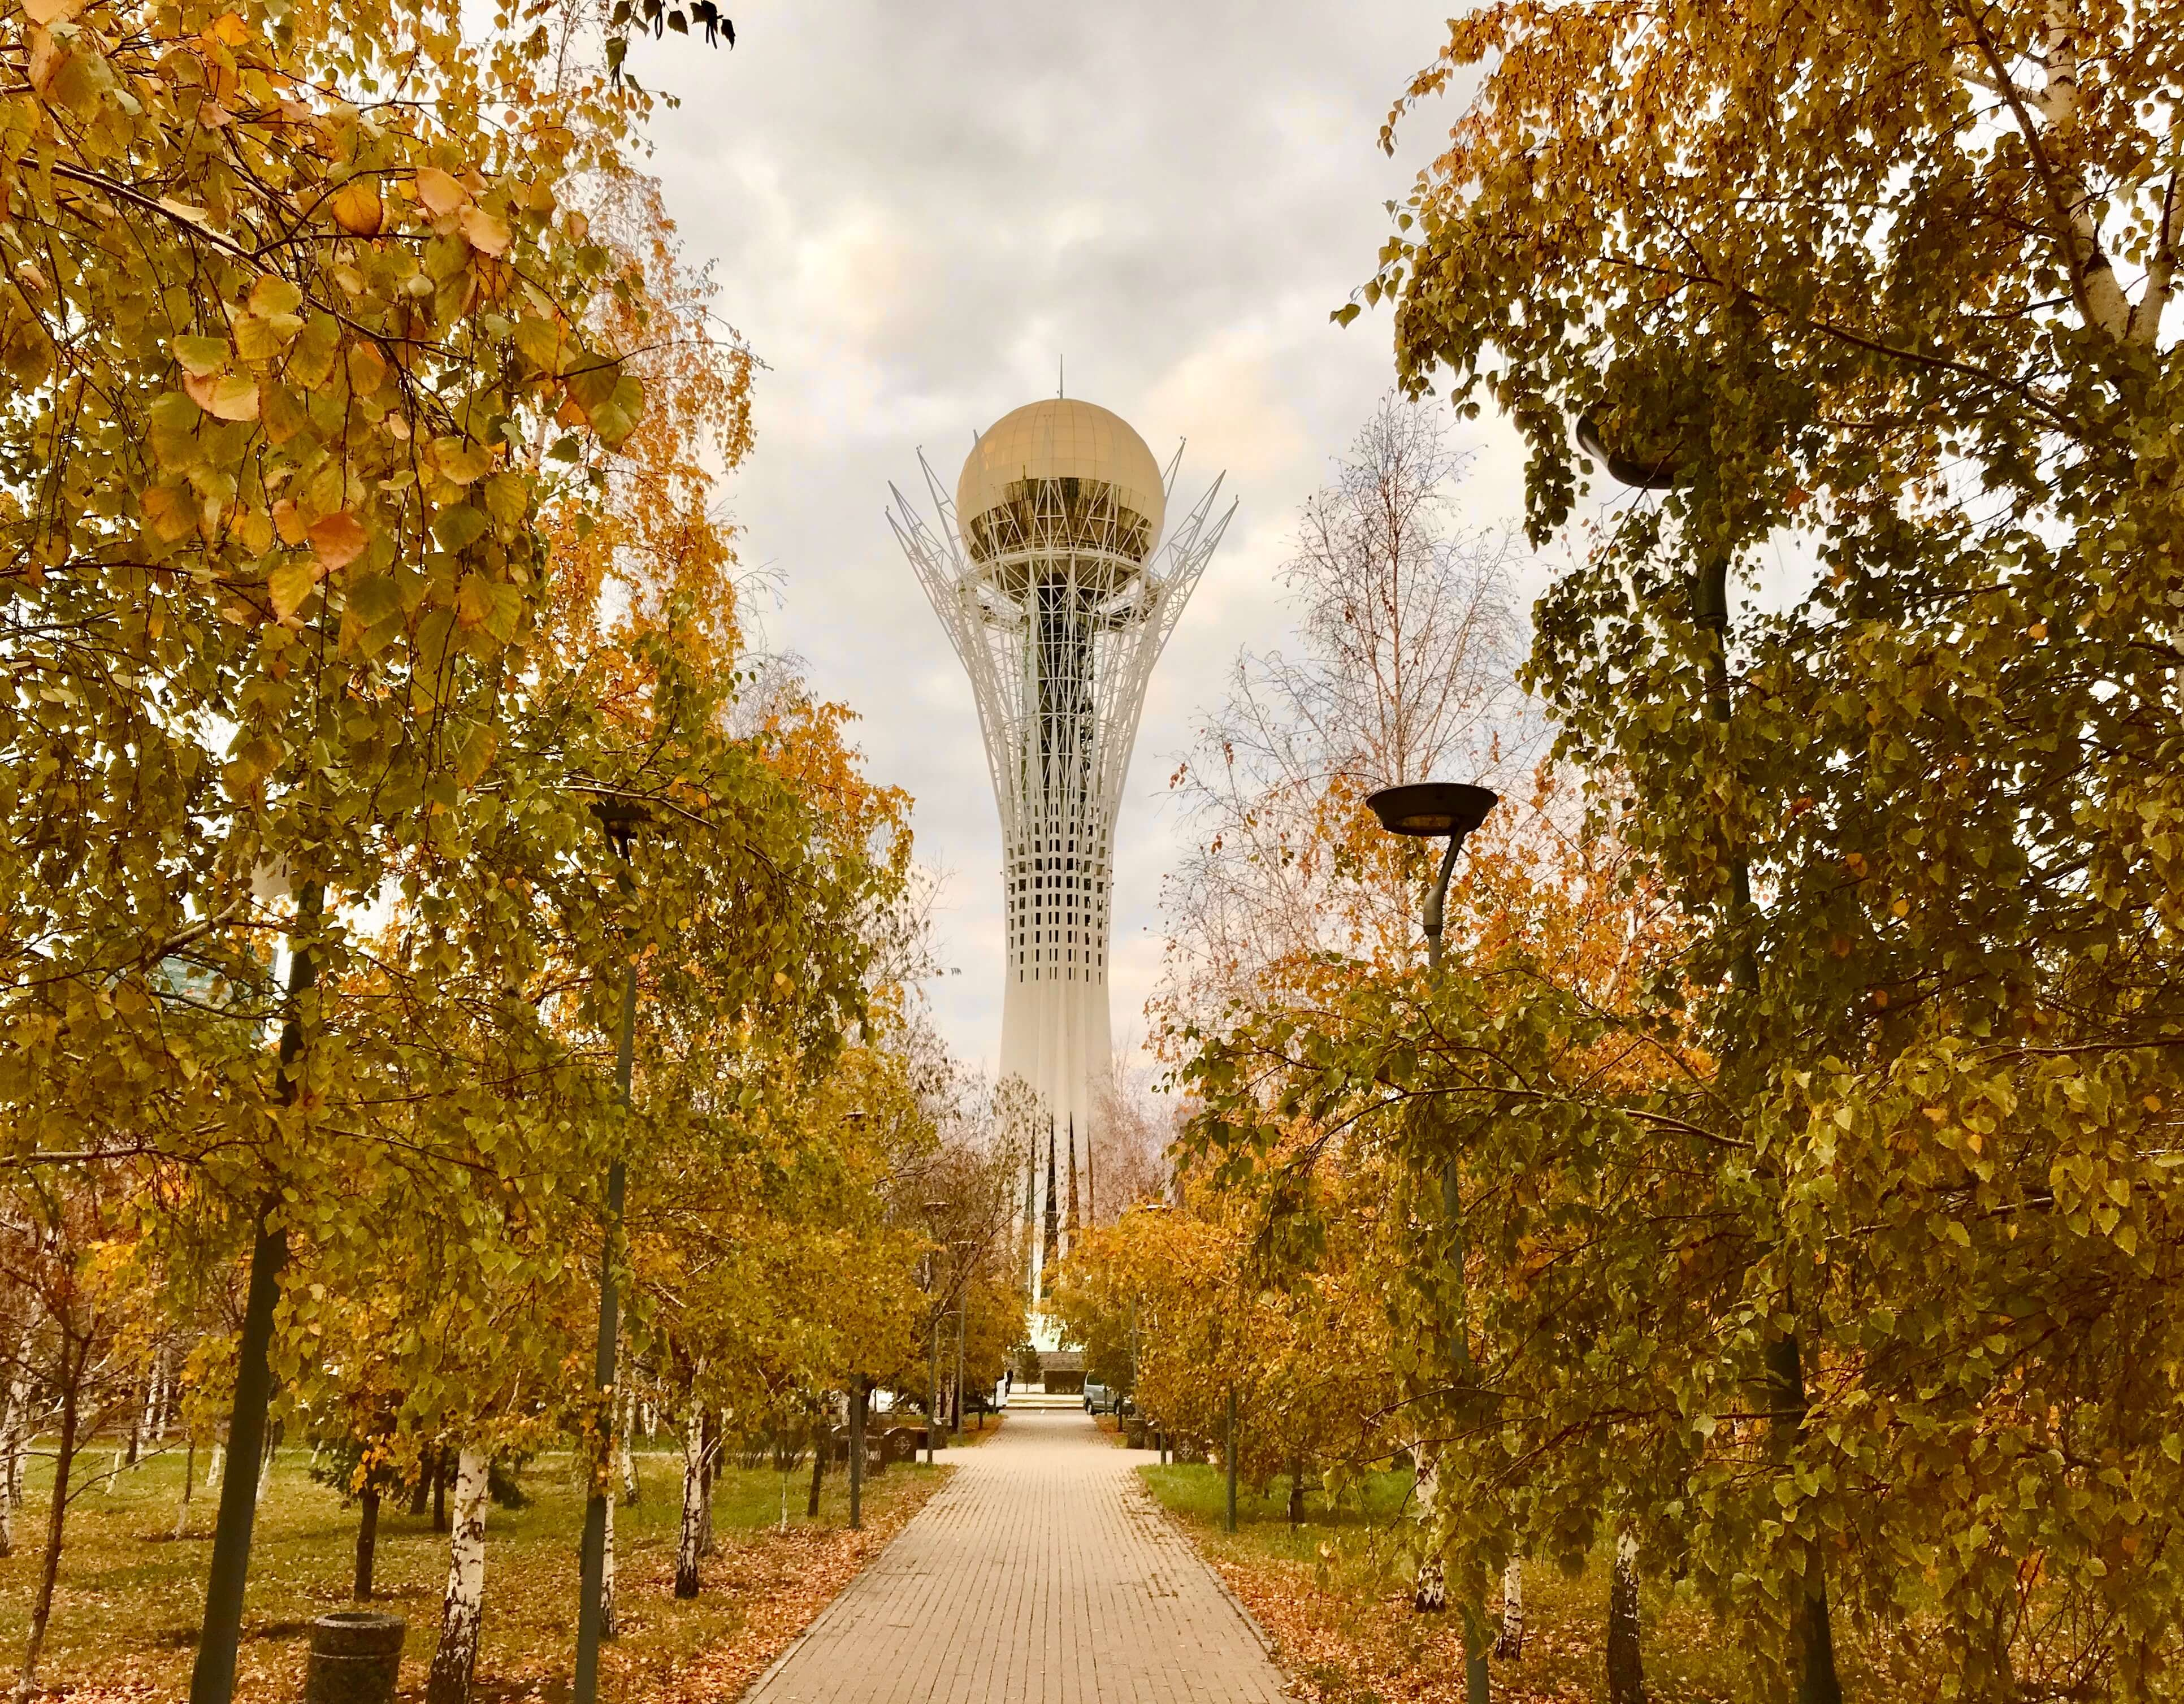 Kazakhstan Is Emerging As A Significant Player In Crypto Mining